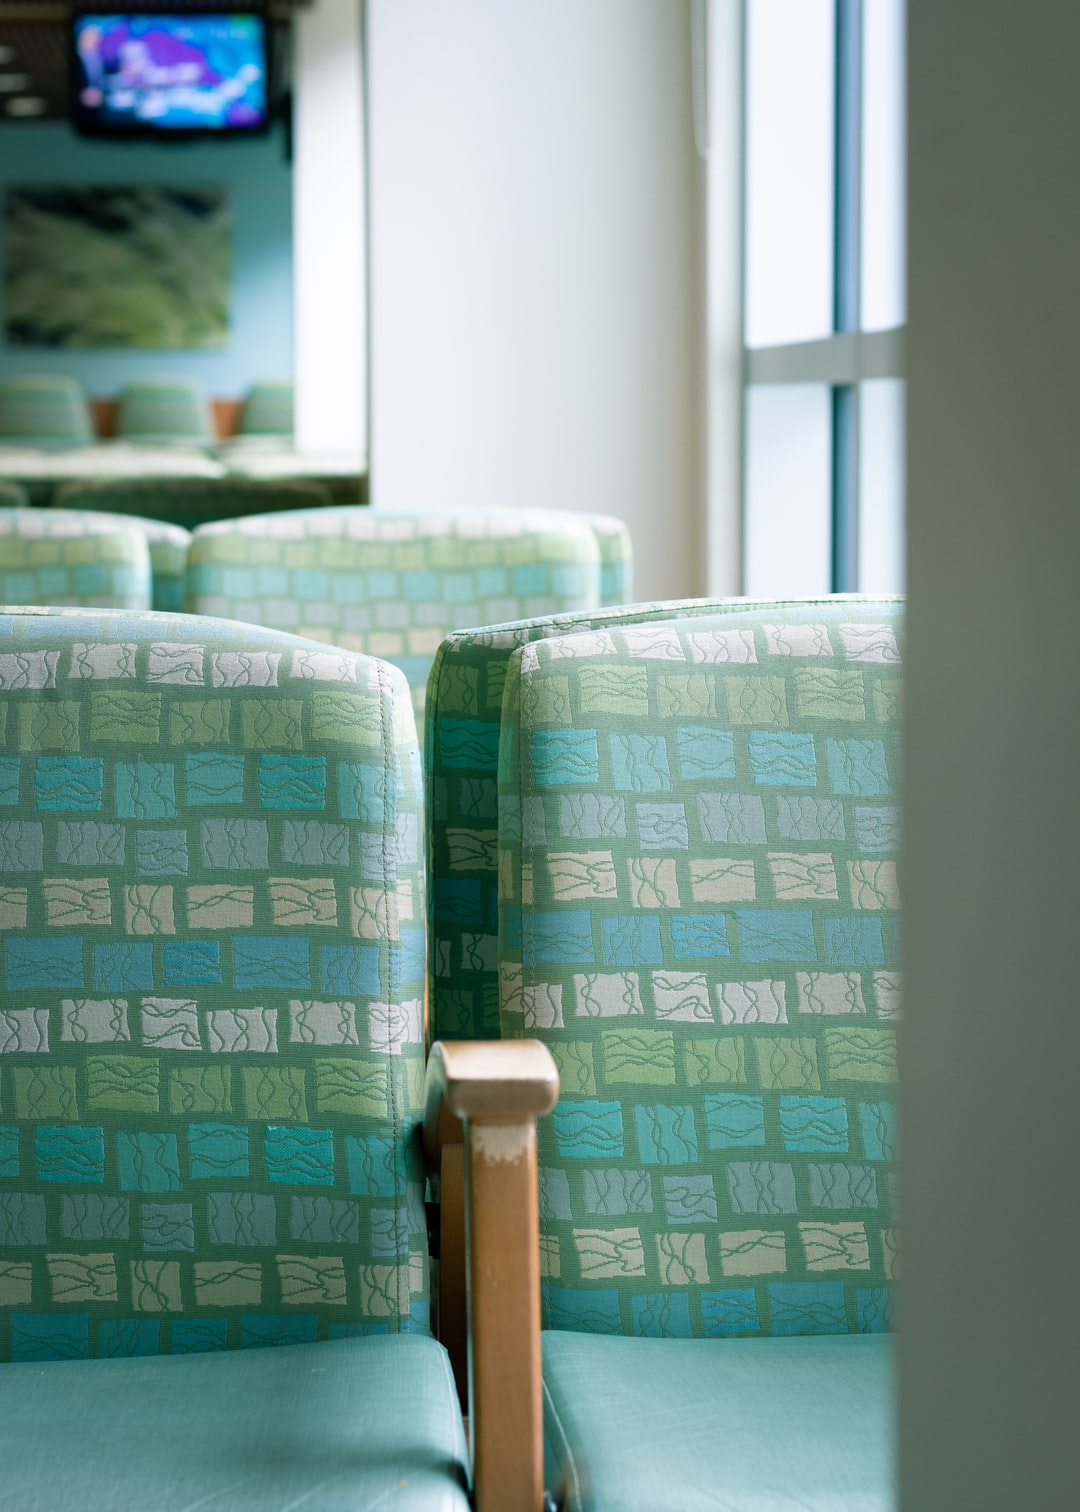 hospital waiting room with green seats next to bright windows and a TV in the distance